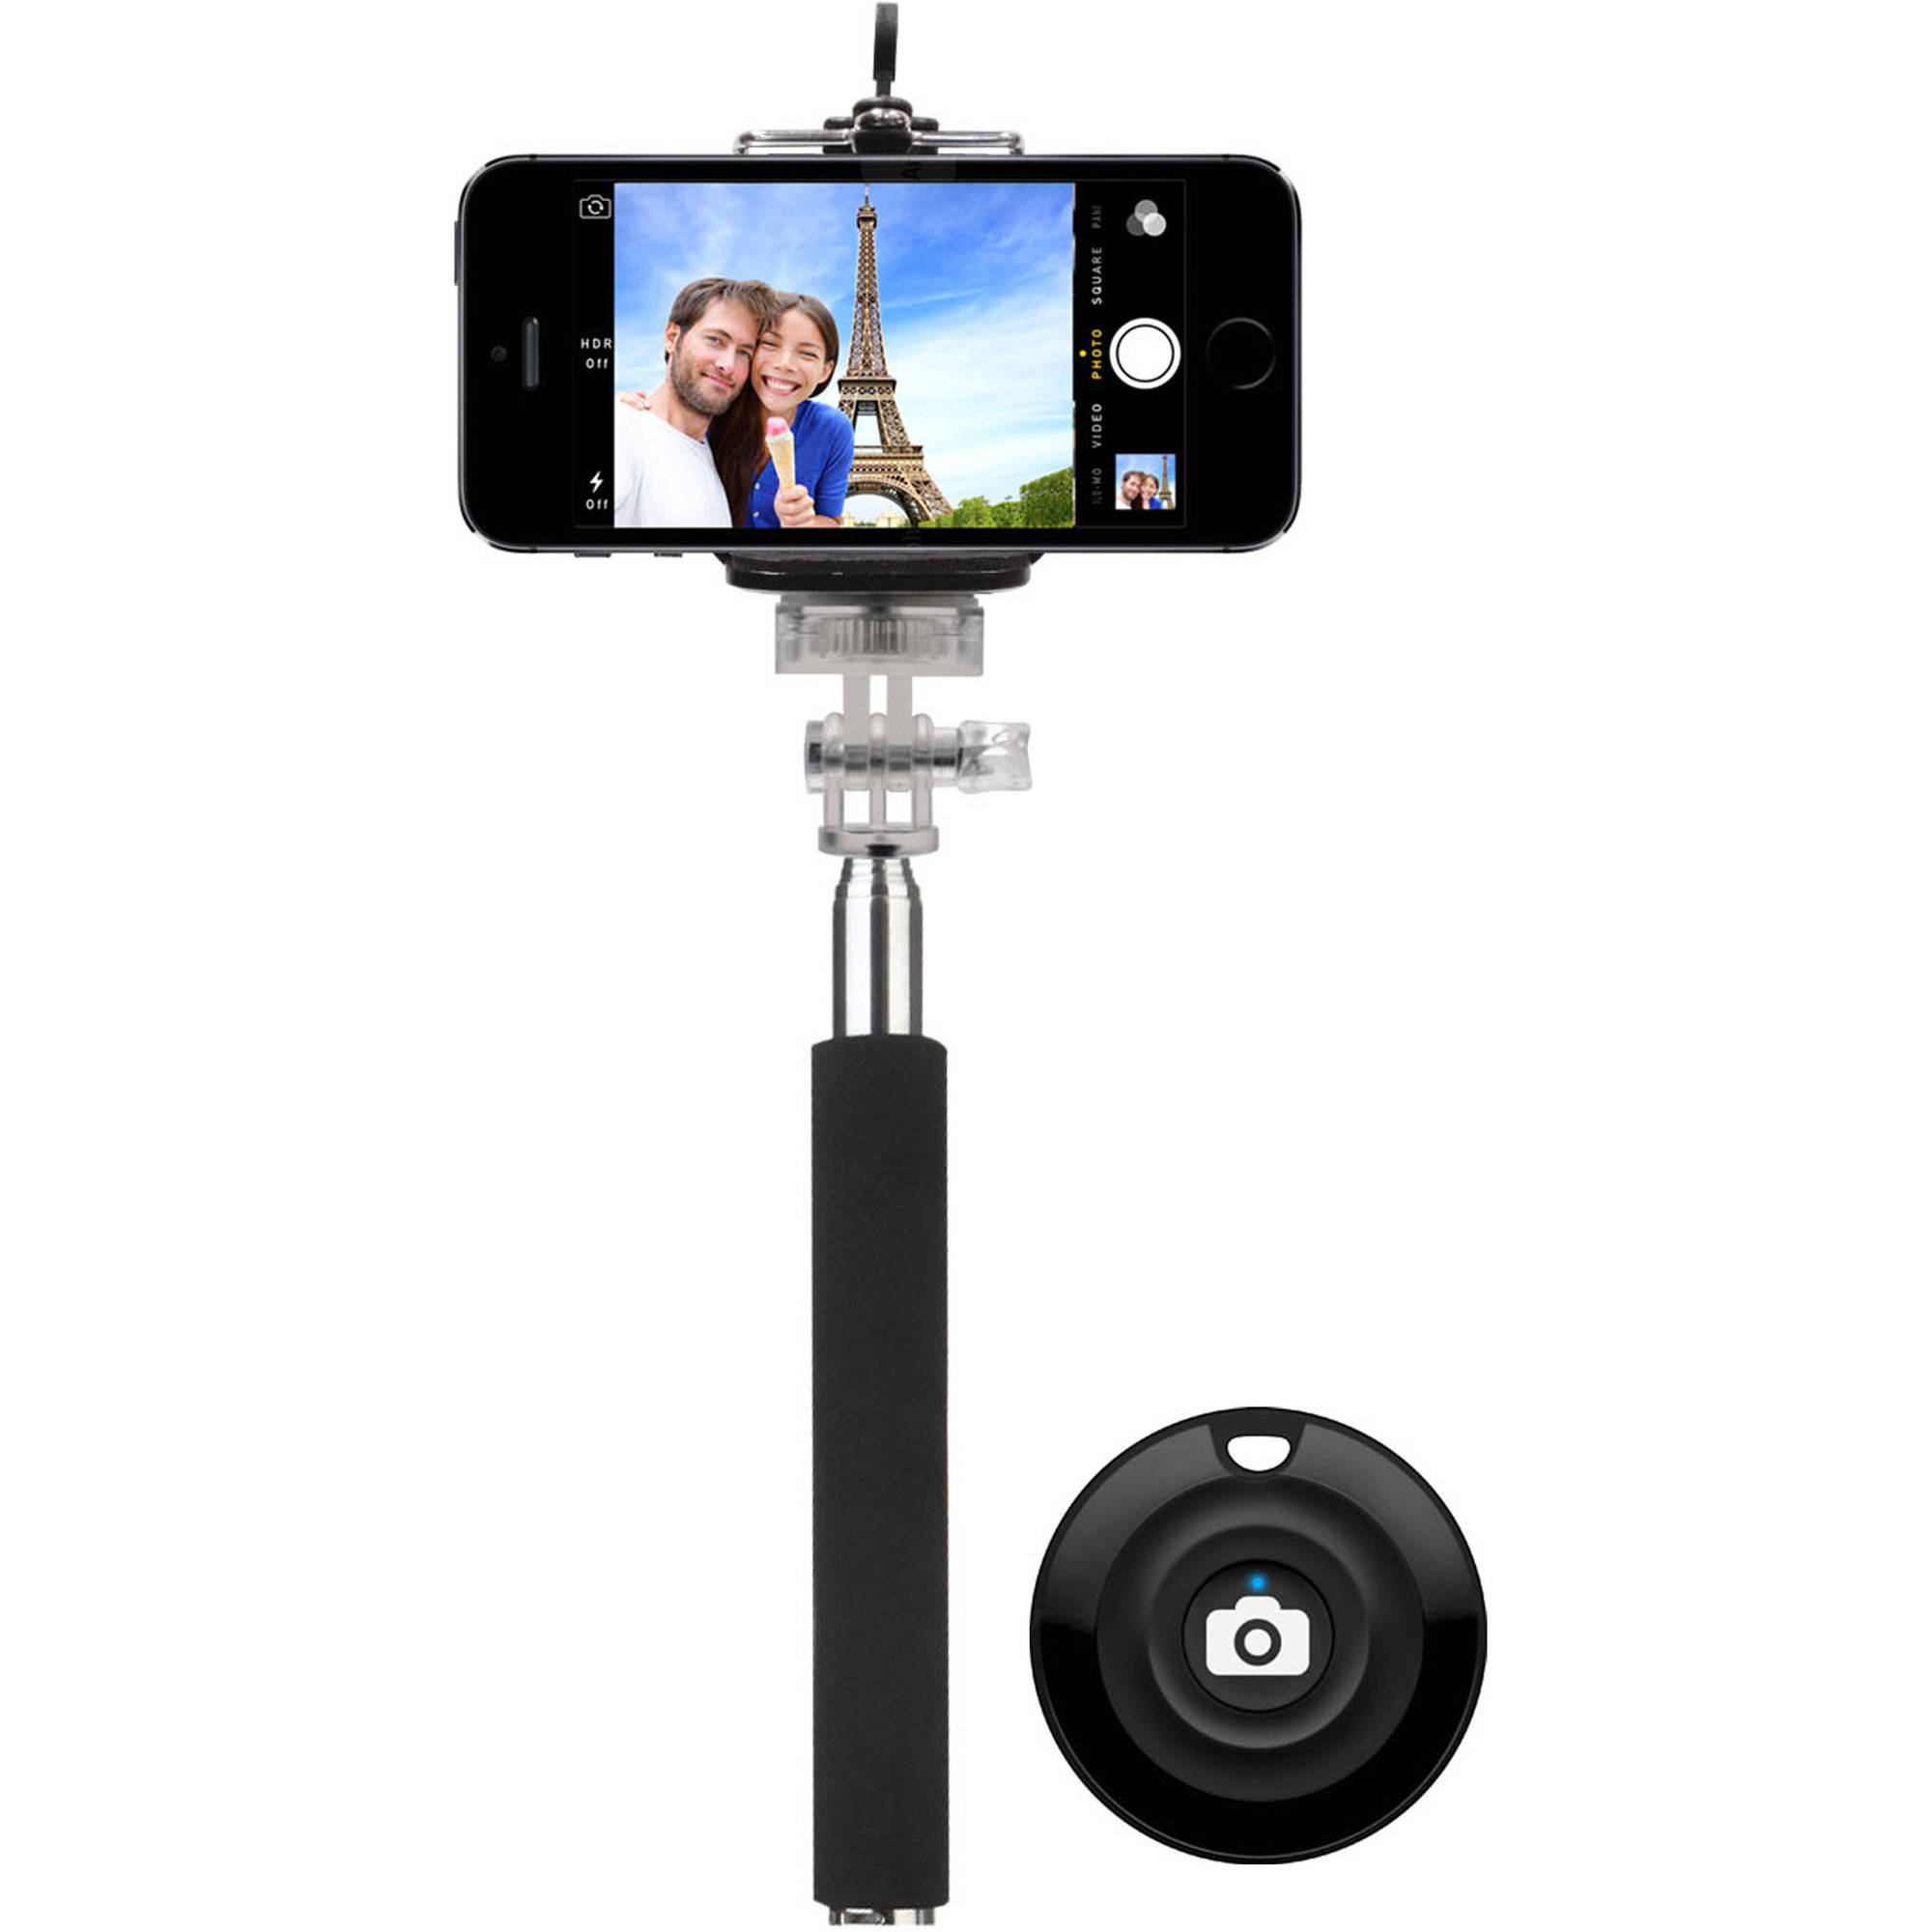 Emio Selfie Stick Bundle with Bluetooth Remote